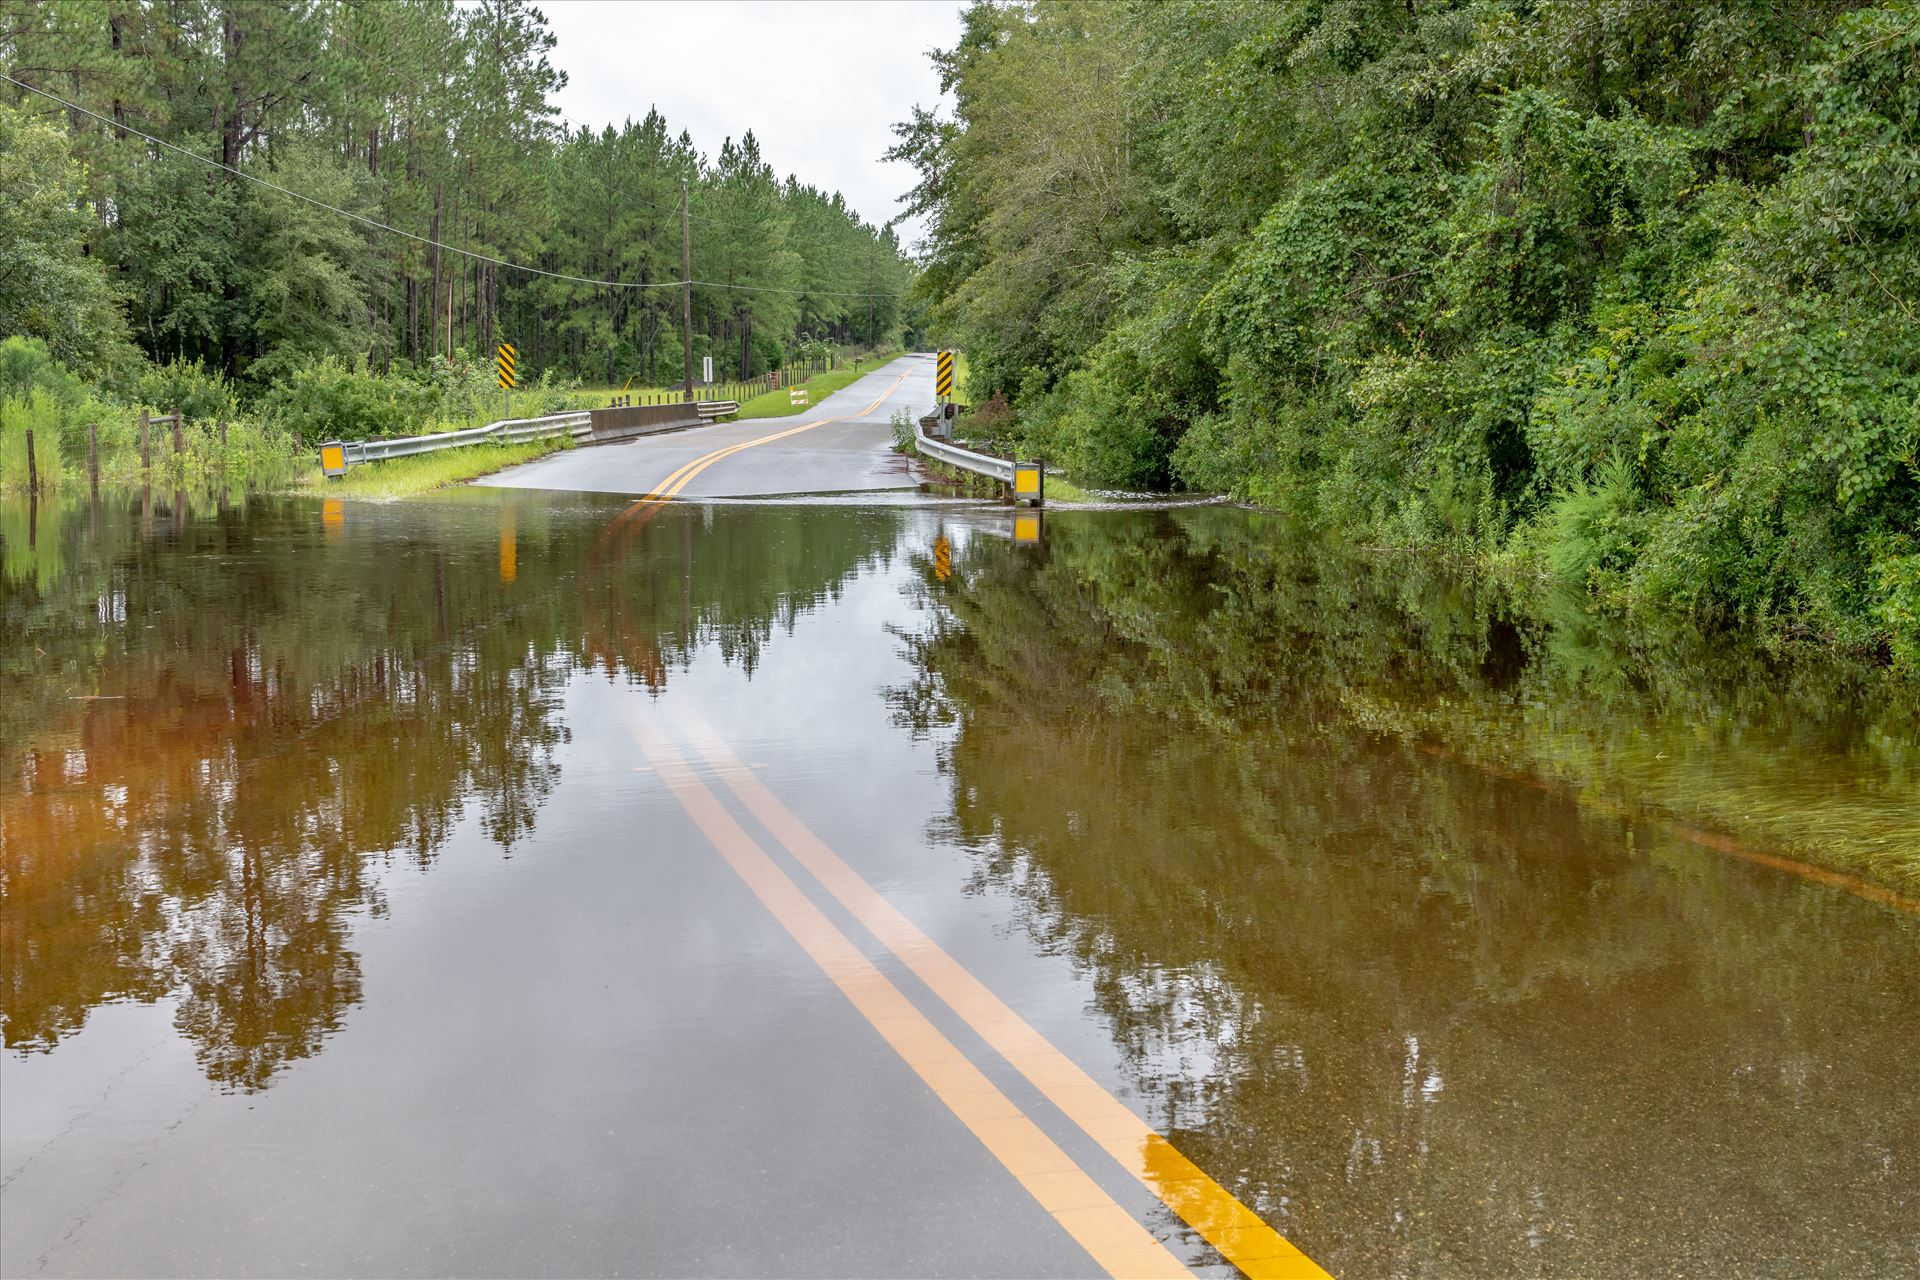 Bear Creek flood of August 02, 2018 - Heavy rains in Bay County Florida, Bear Creek area, South Bear Creek Road, Crook Hollow Road and Ed Lee road